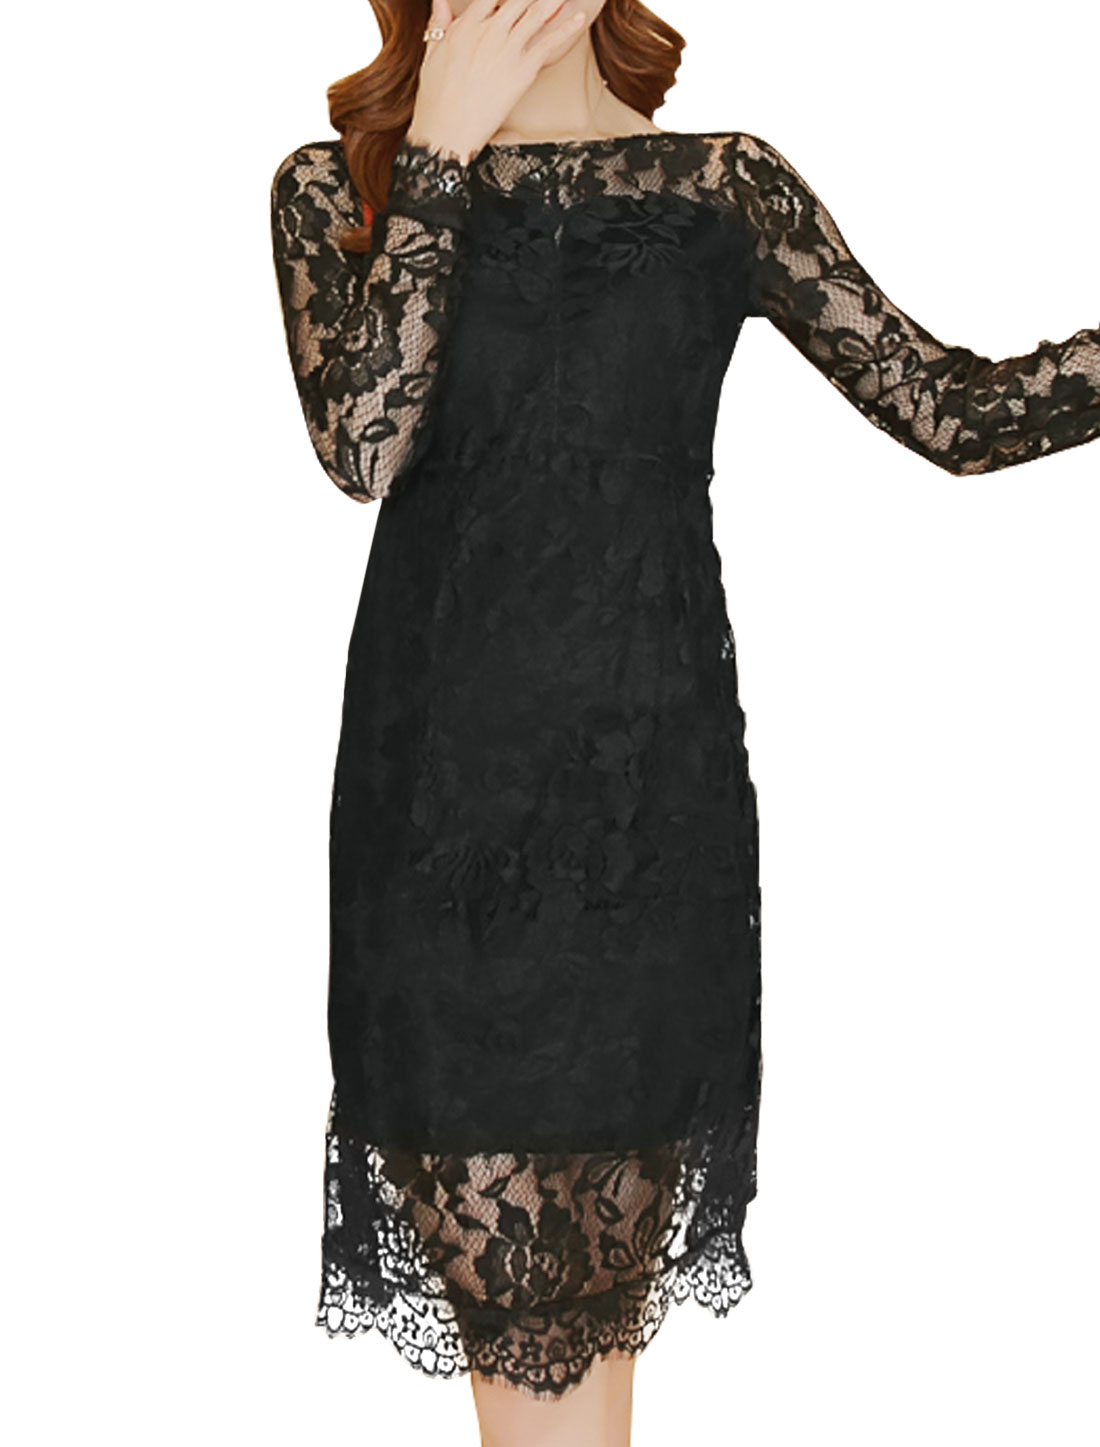 Women Semi Sheer Yoke Backless Floral Lace Sheath Dress Black S